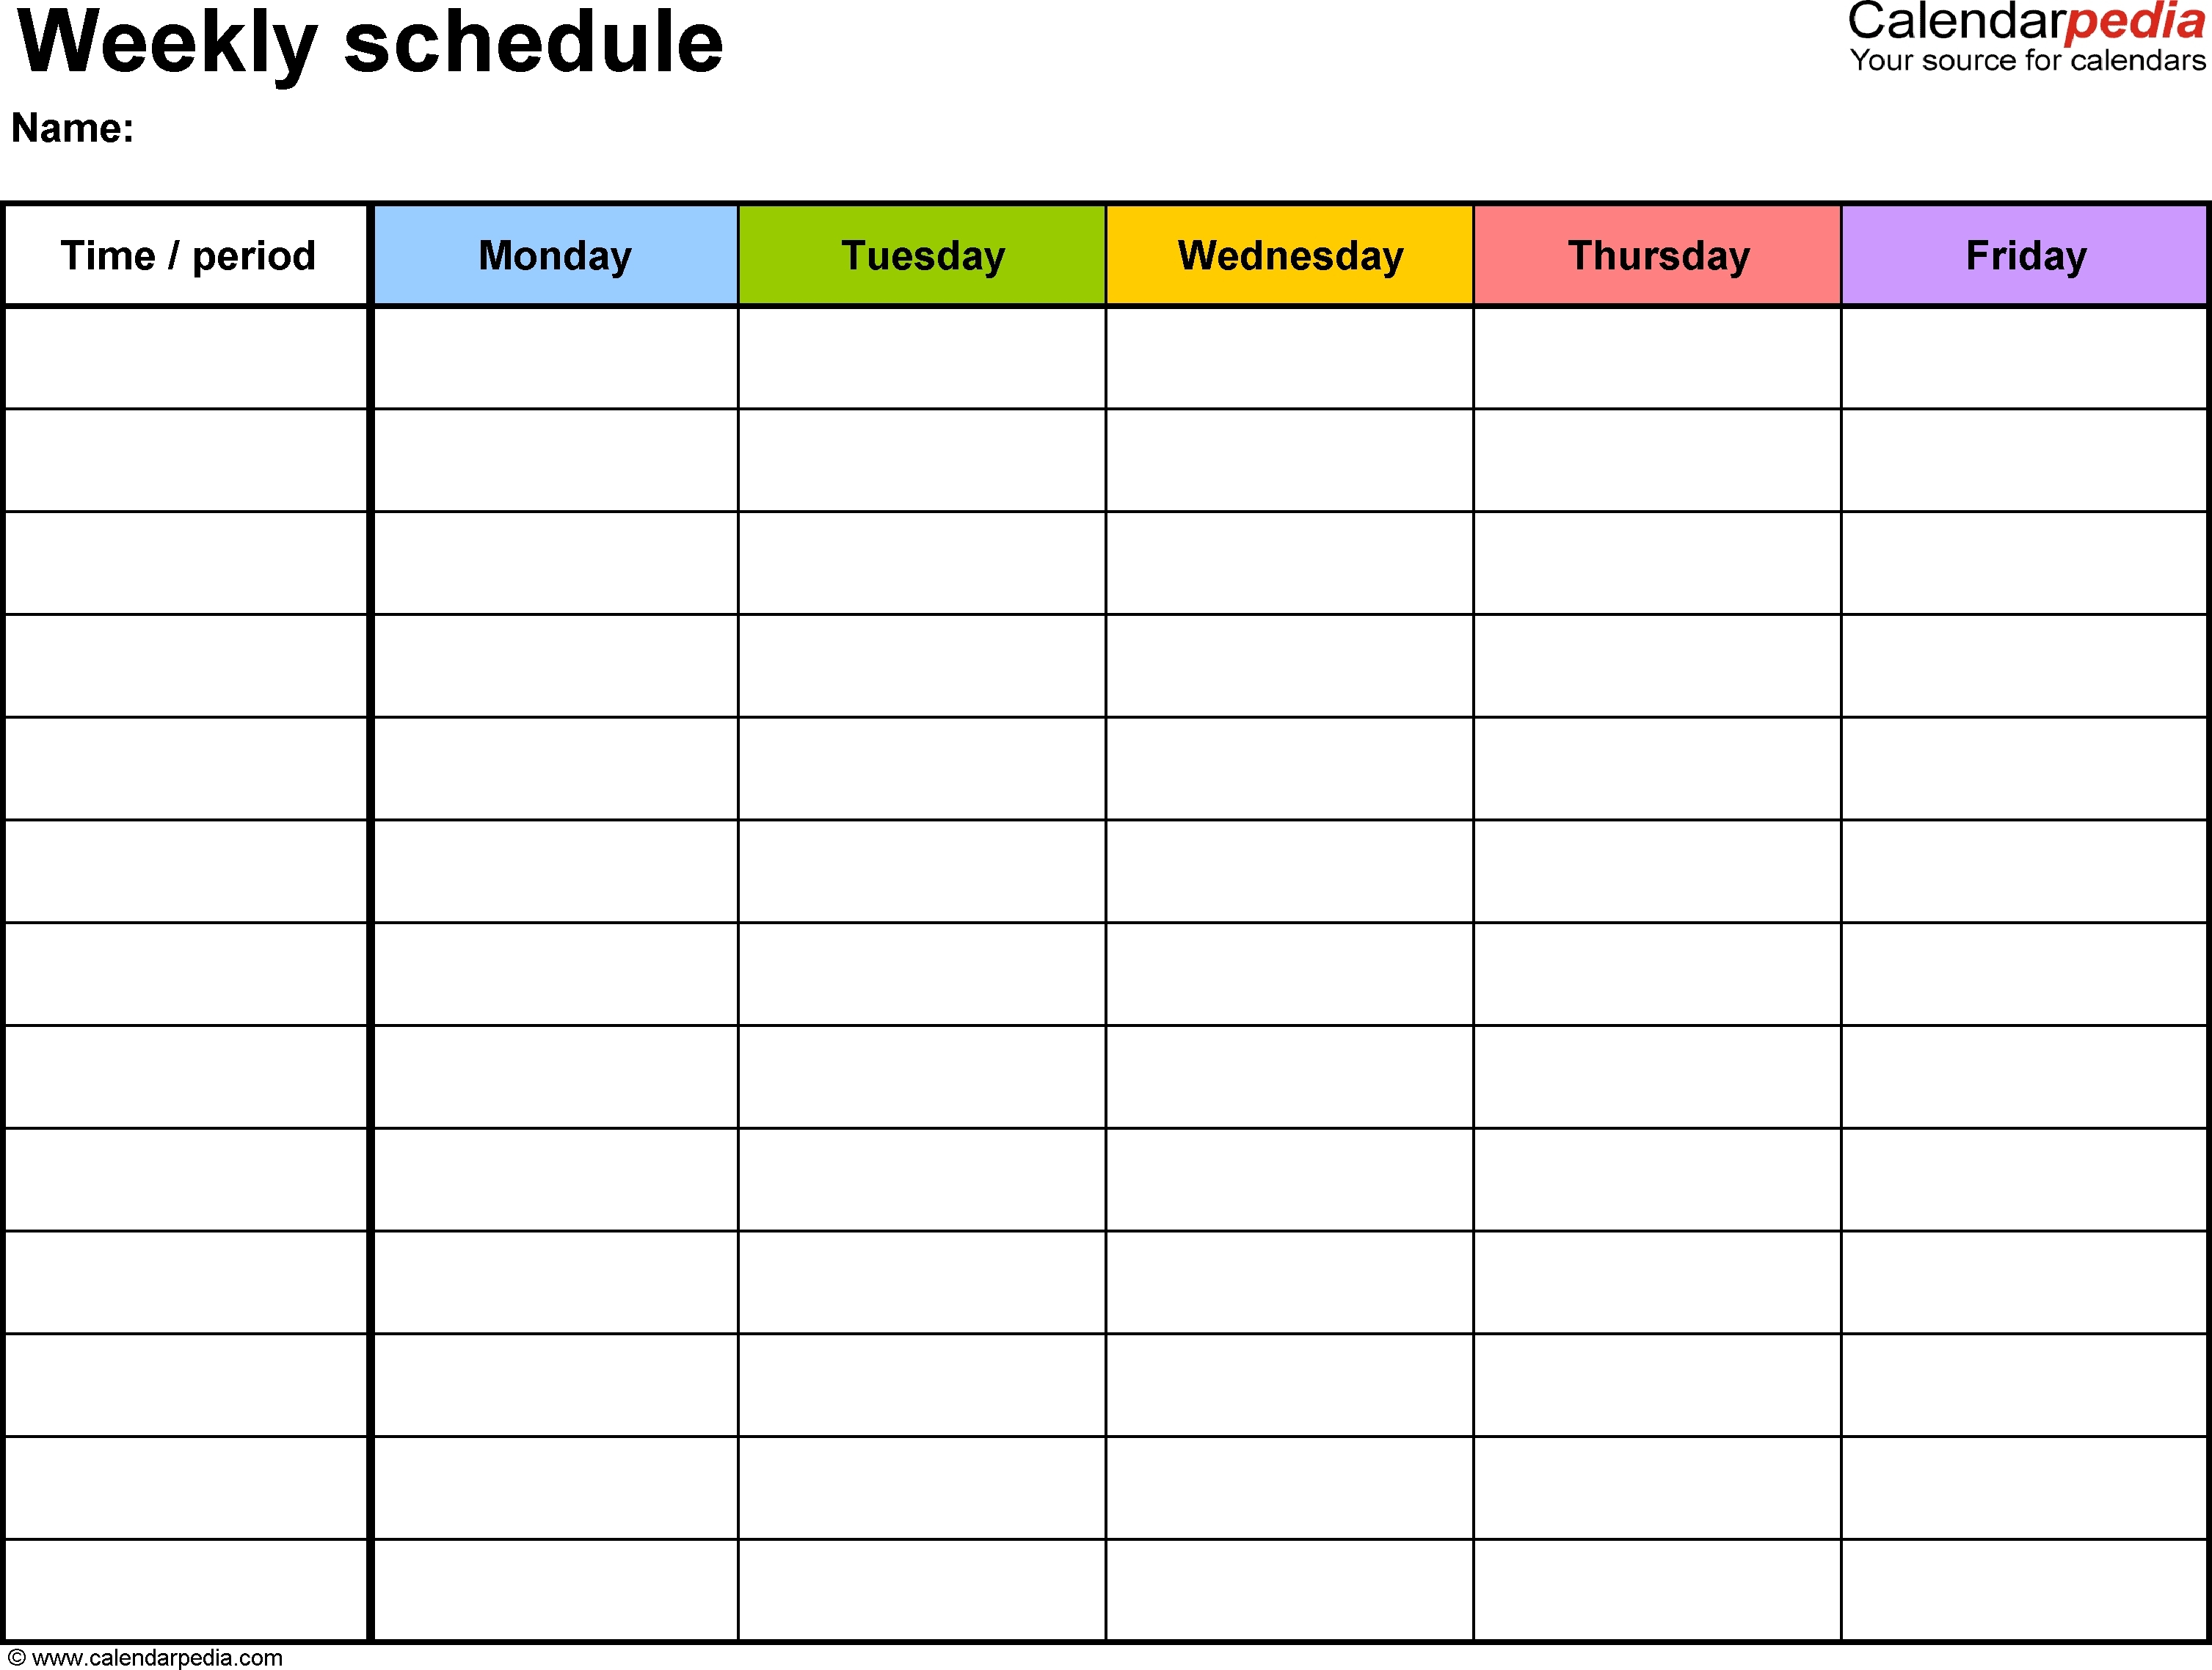 Editable Daily Calendar With Time Slots | Calendar Printing Example throughout Blank Daily Calendar Template With Time Slots